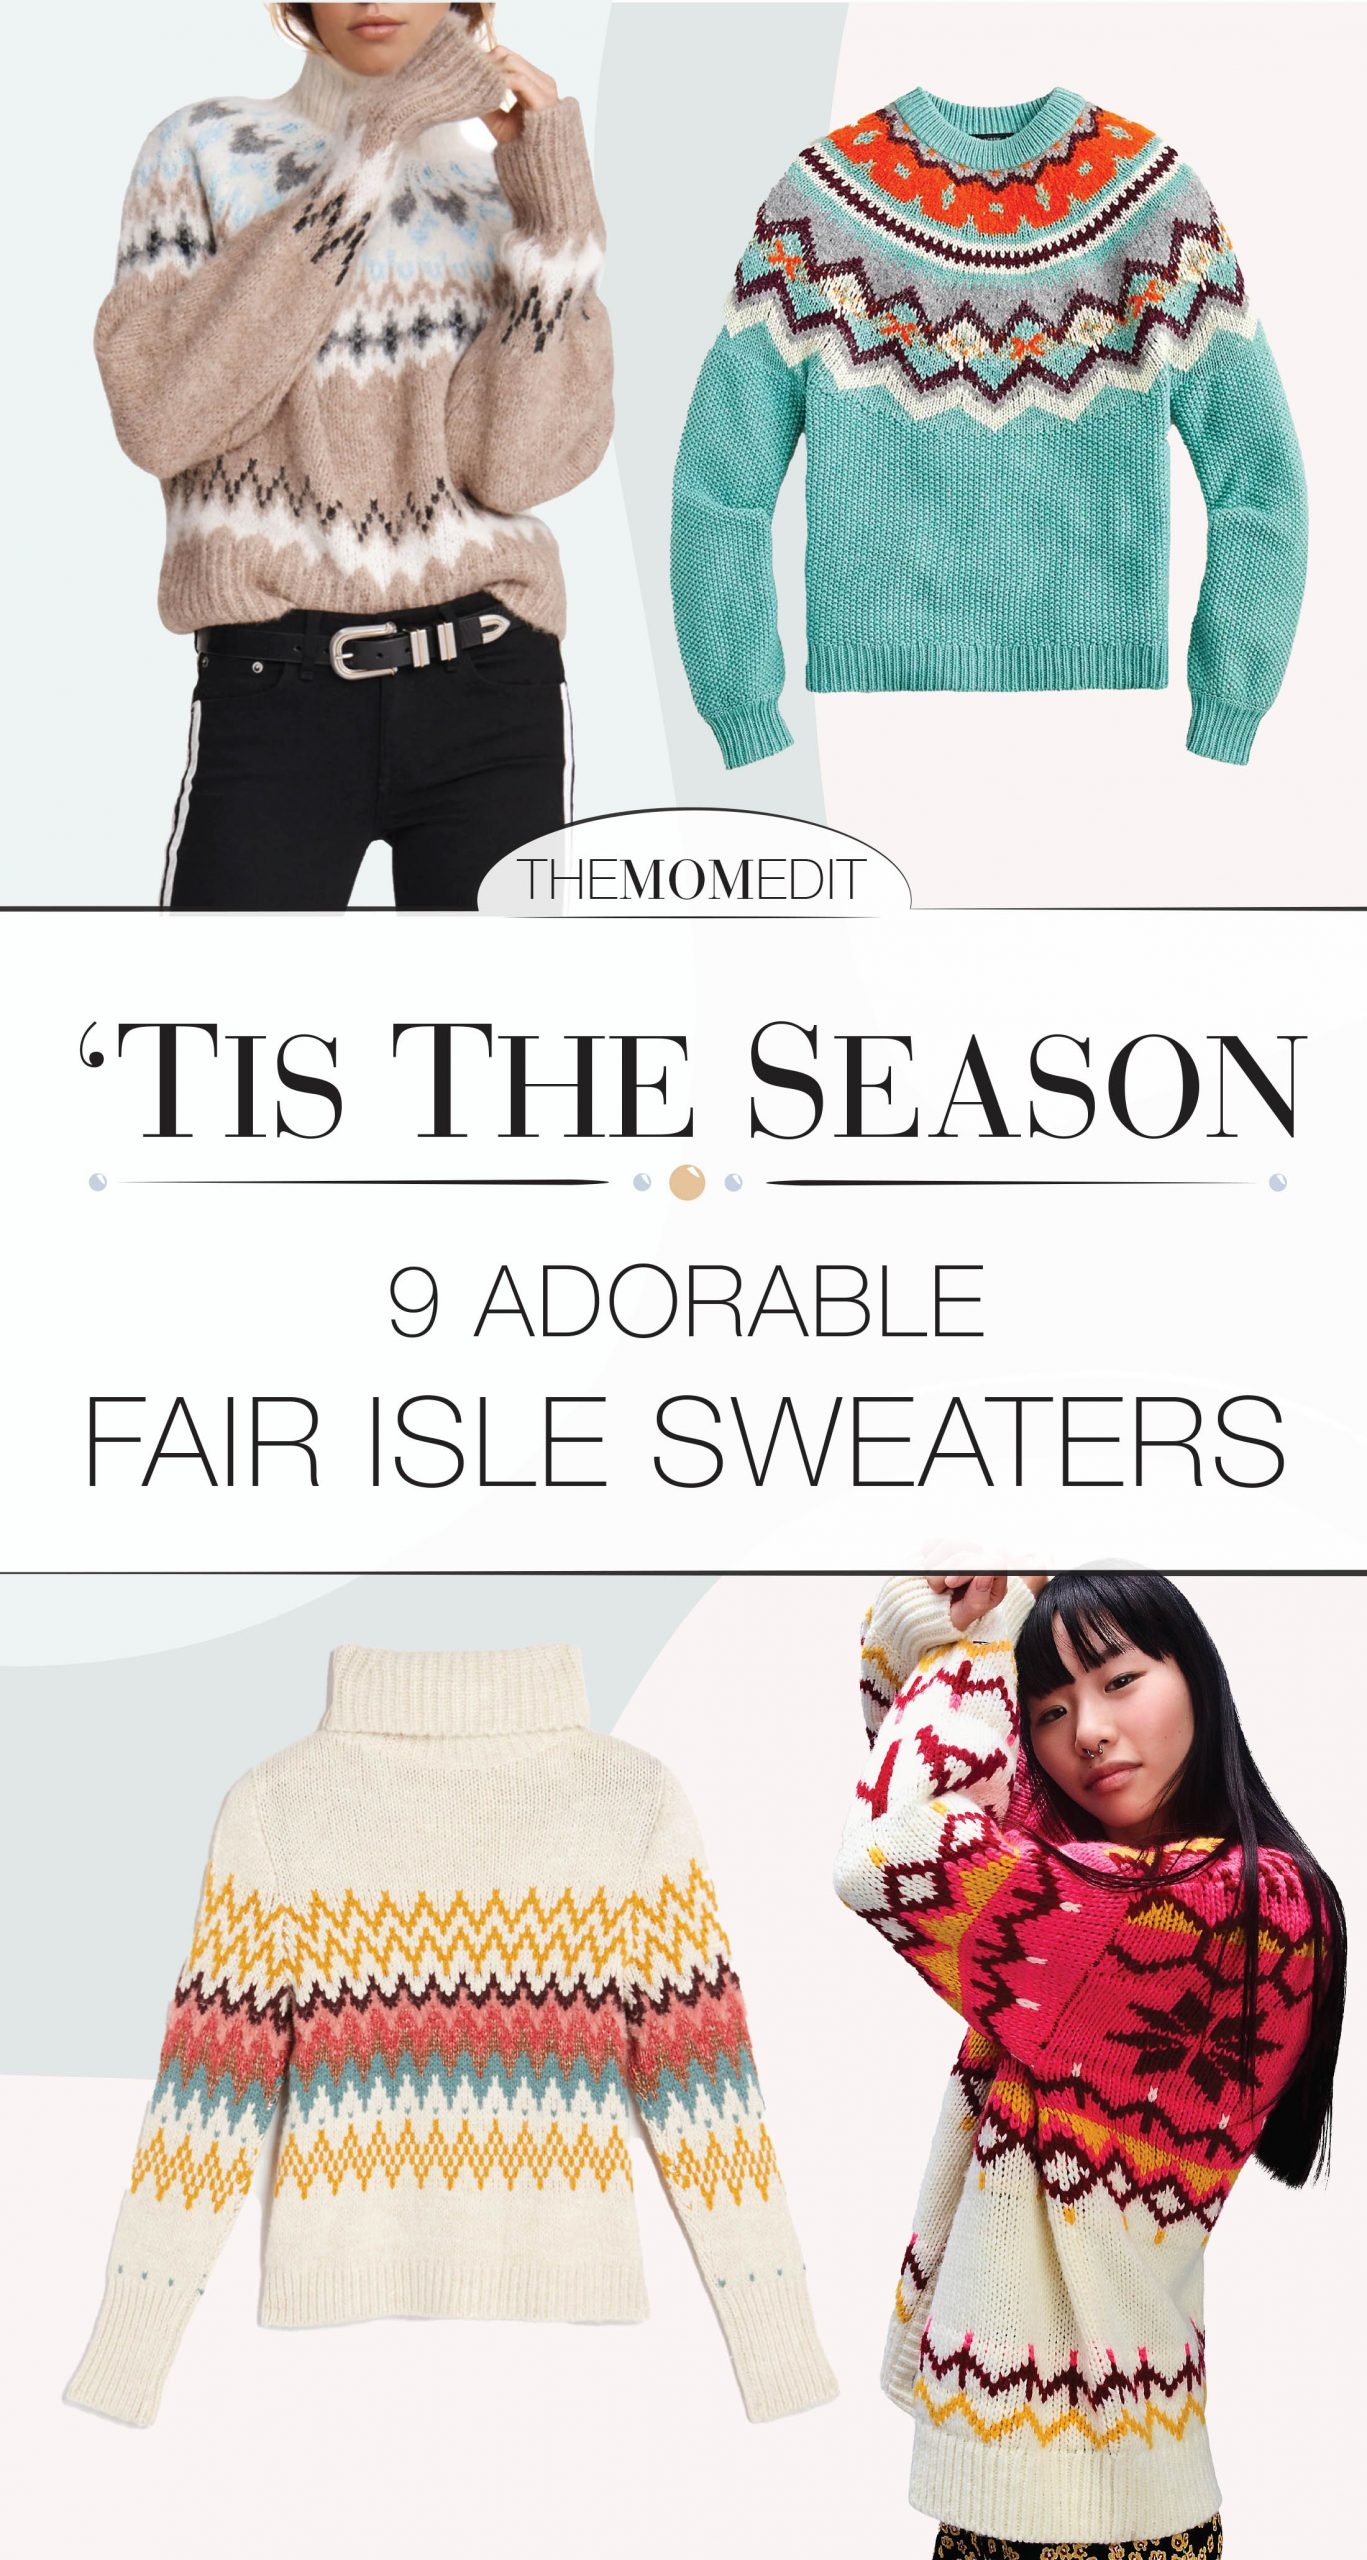 Oh, hey! 'Tis the season for Fair Isle. We found 9 cute just right for the holidays. J.Crew, Gap + rag & bone all have bright, Zoom-friendly options.